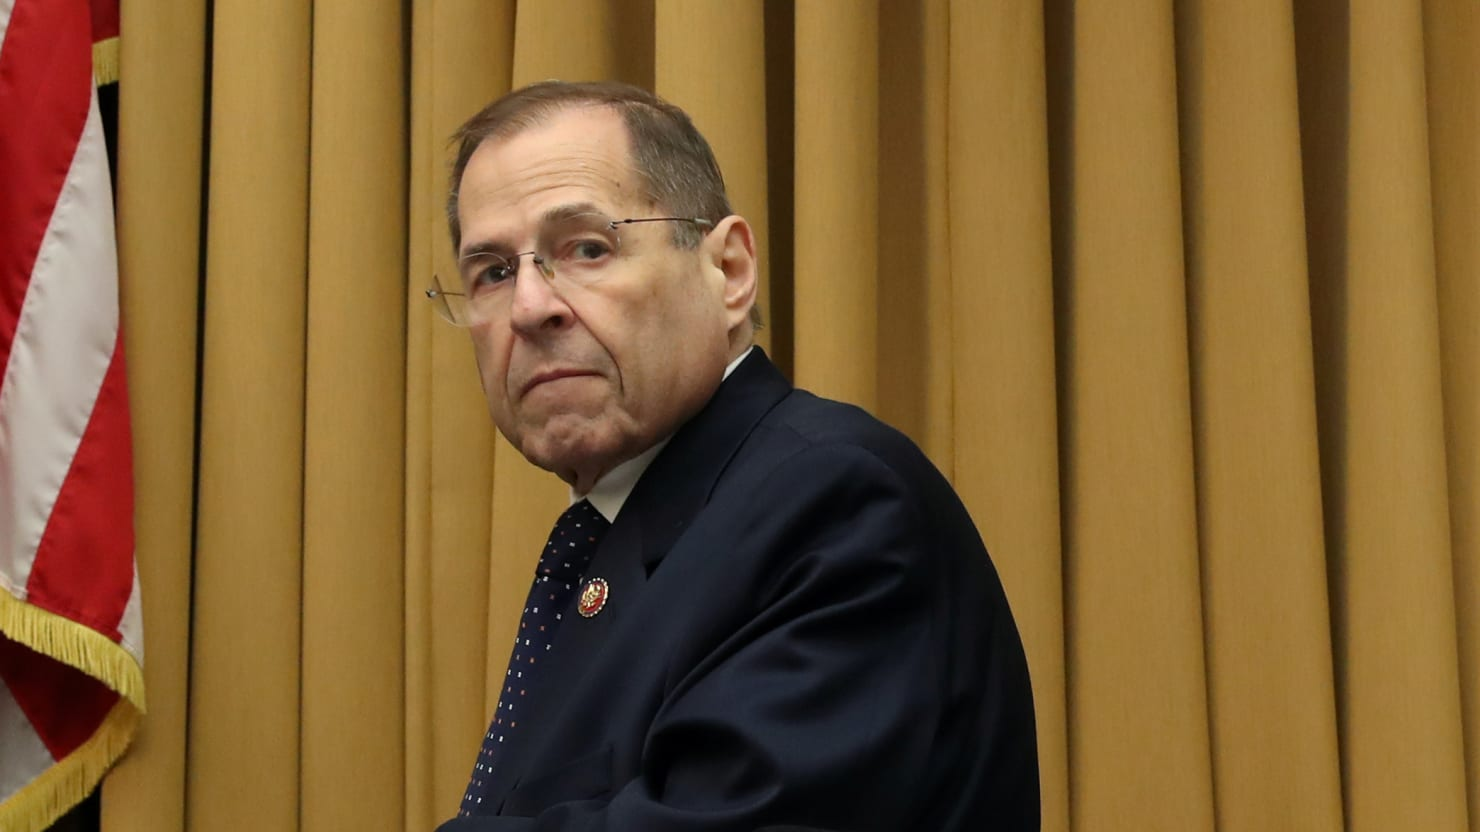 Nadler: We'll Hold McGahn in Contempt if He Skips Congressional Testimony